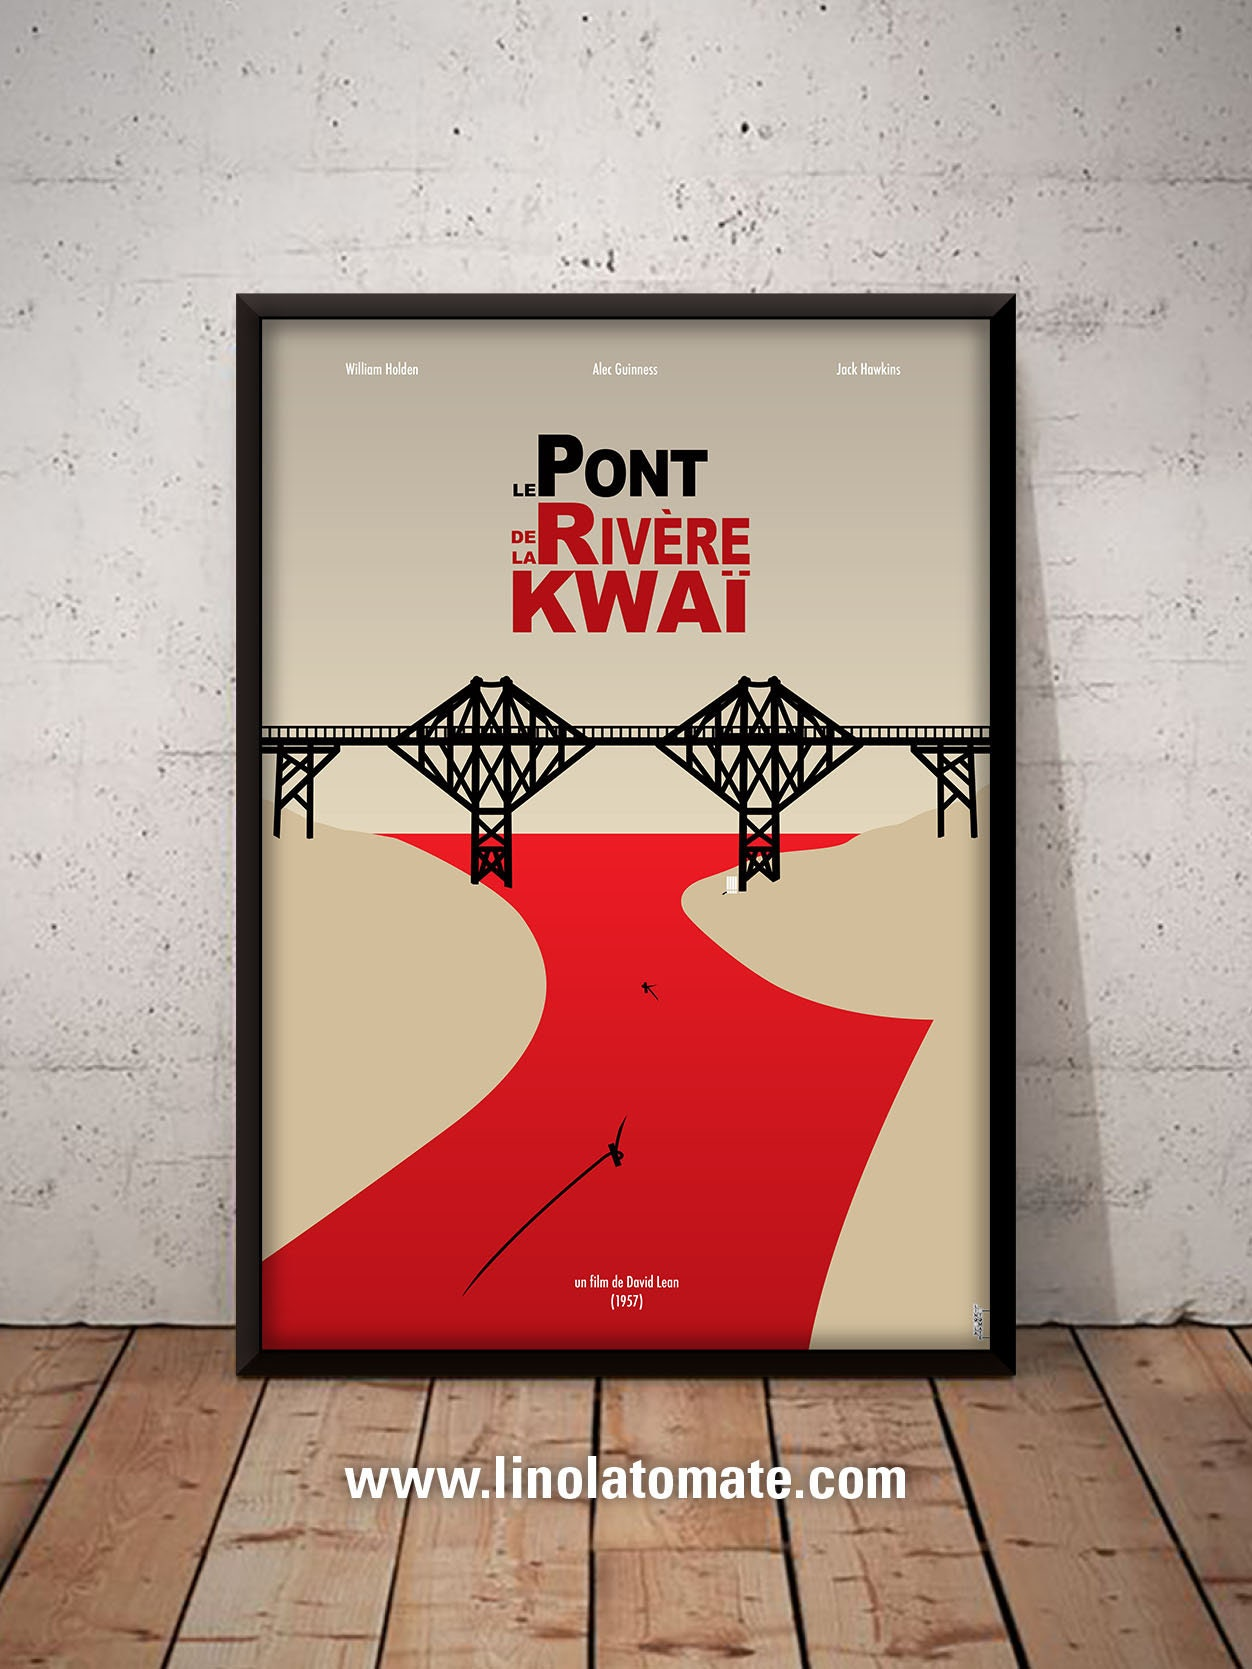 Le Pont De La Rivi 200 Re Kwa 207 The Bridge On The River Kwai